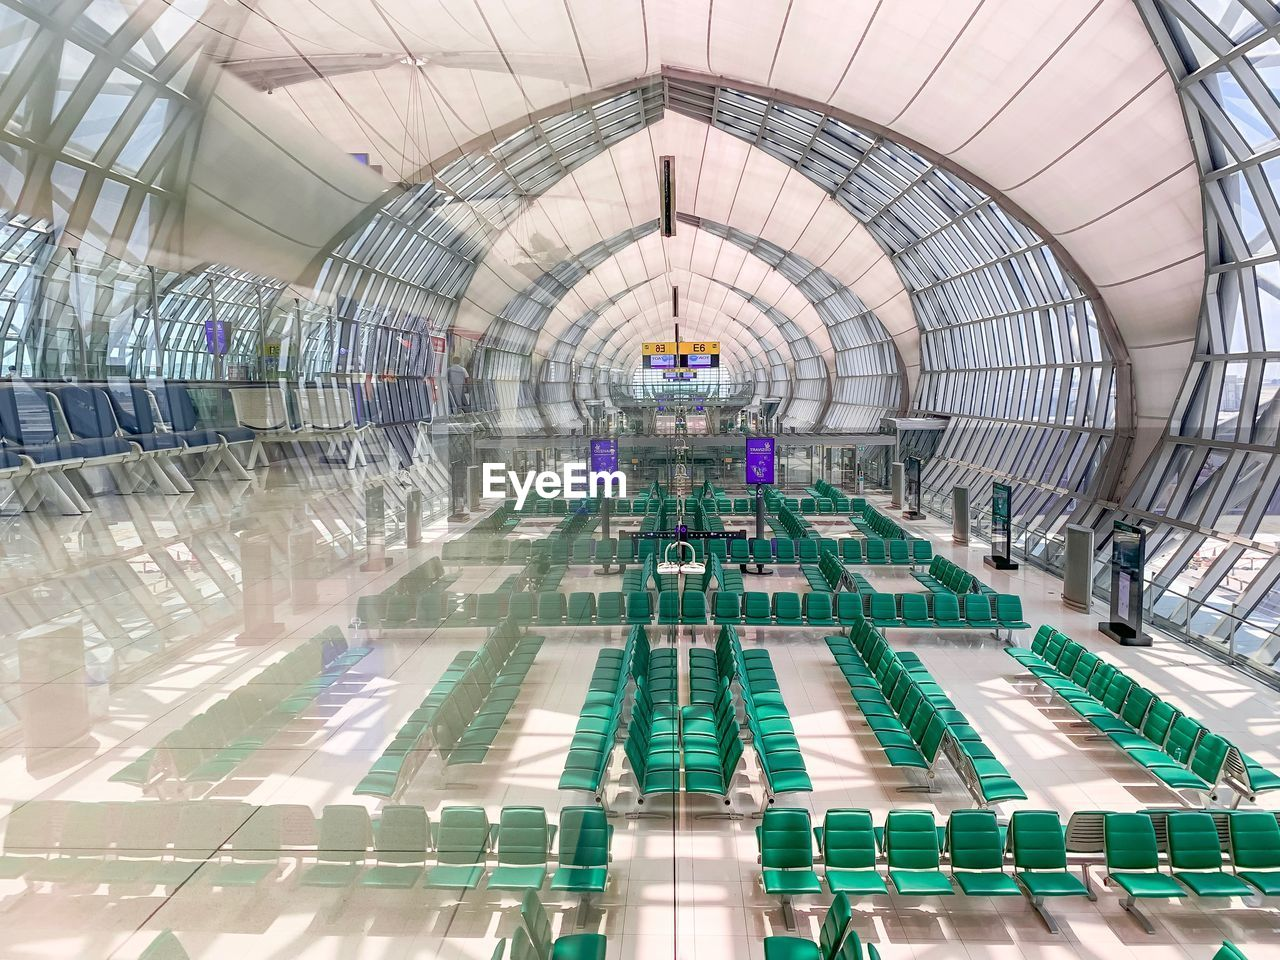 indoors, ceiling, architecture, glass - material, built structure, incidental people, real people, airport, transparent, flooring, illuminated, travel, high angle view, shopping mall, modern, day, group of people, large group of people, airport terminal